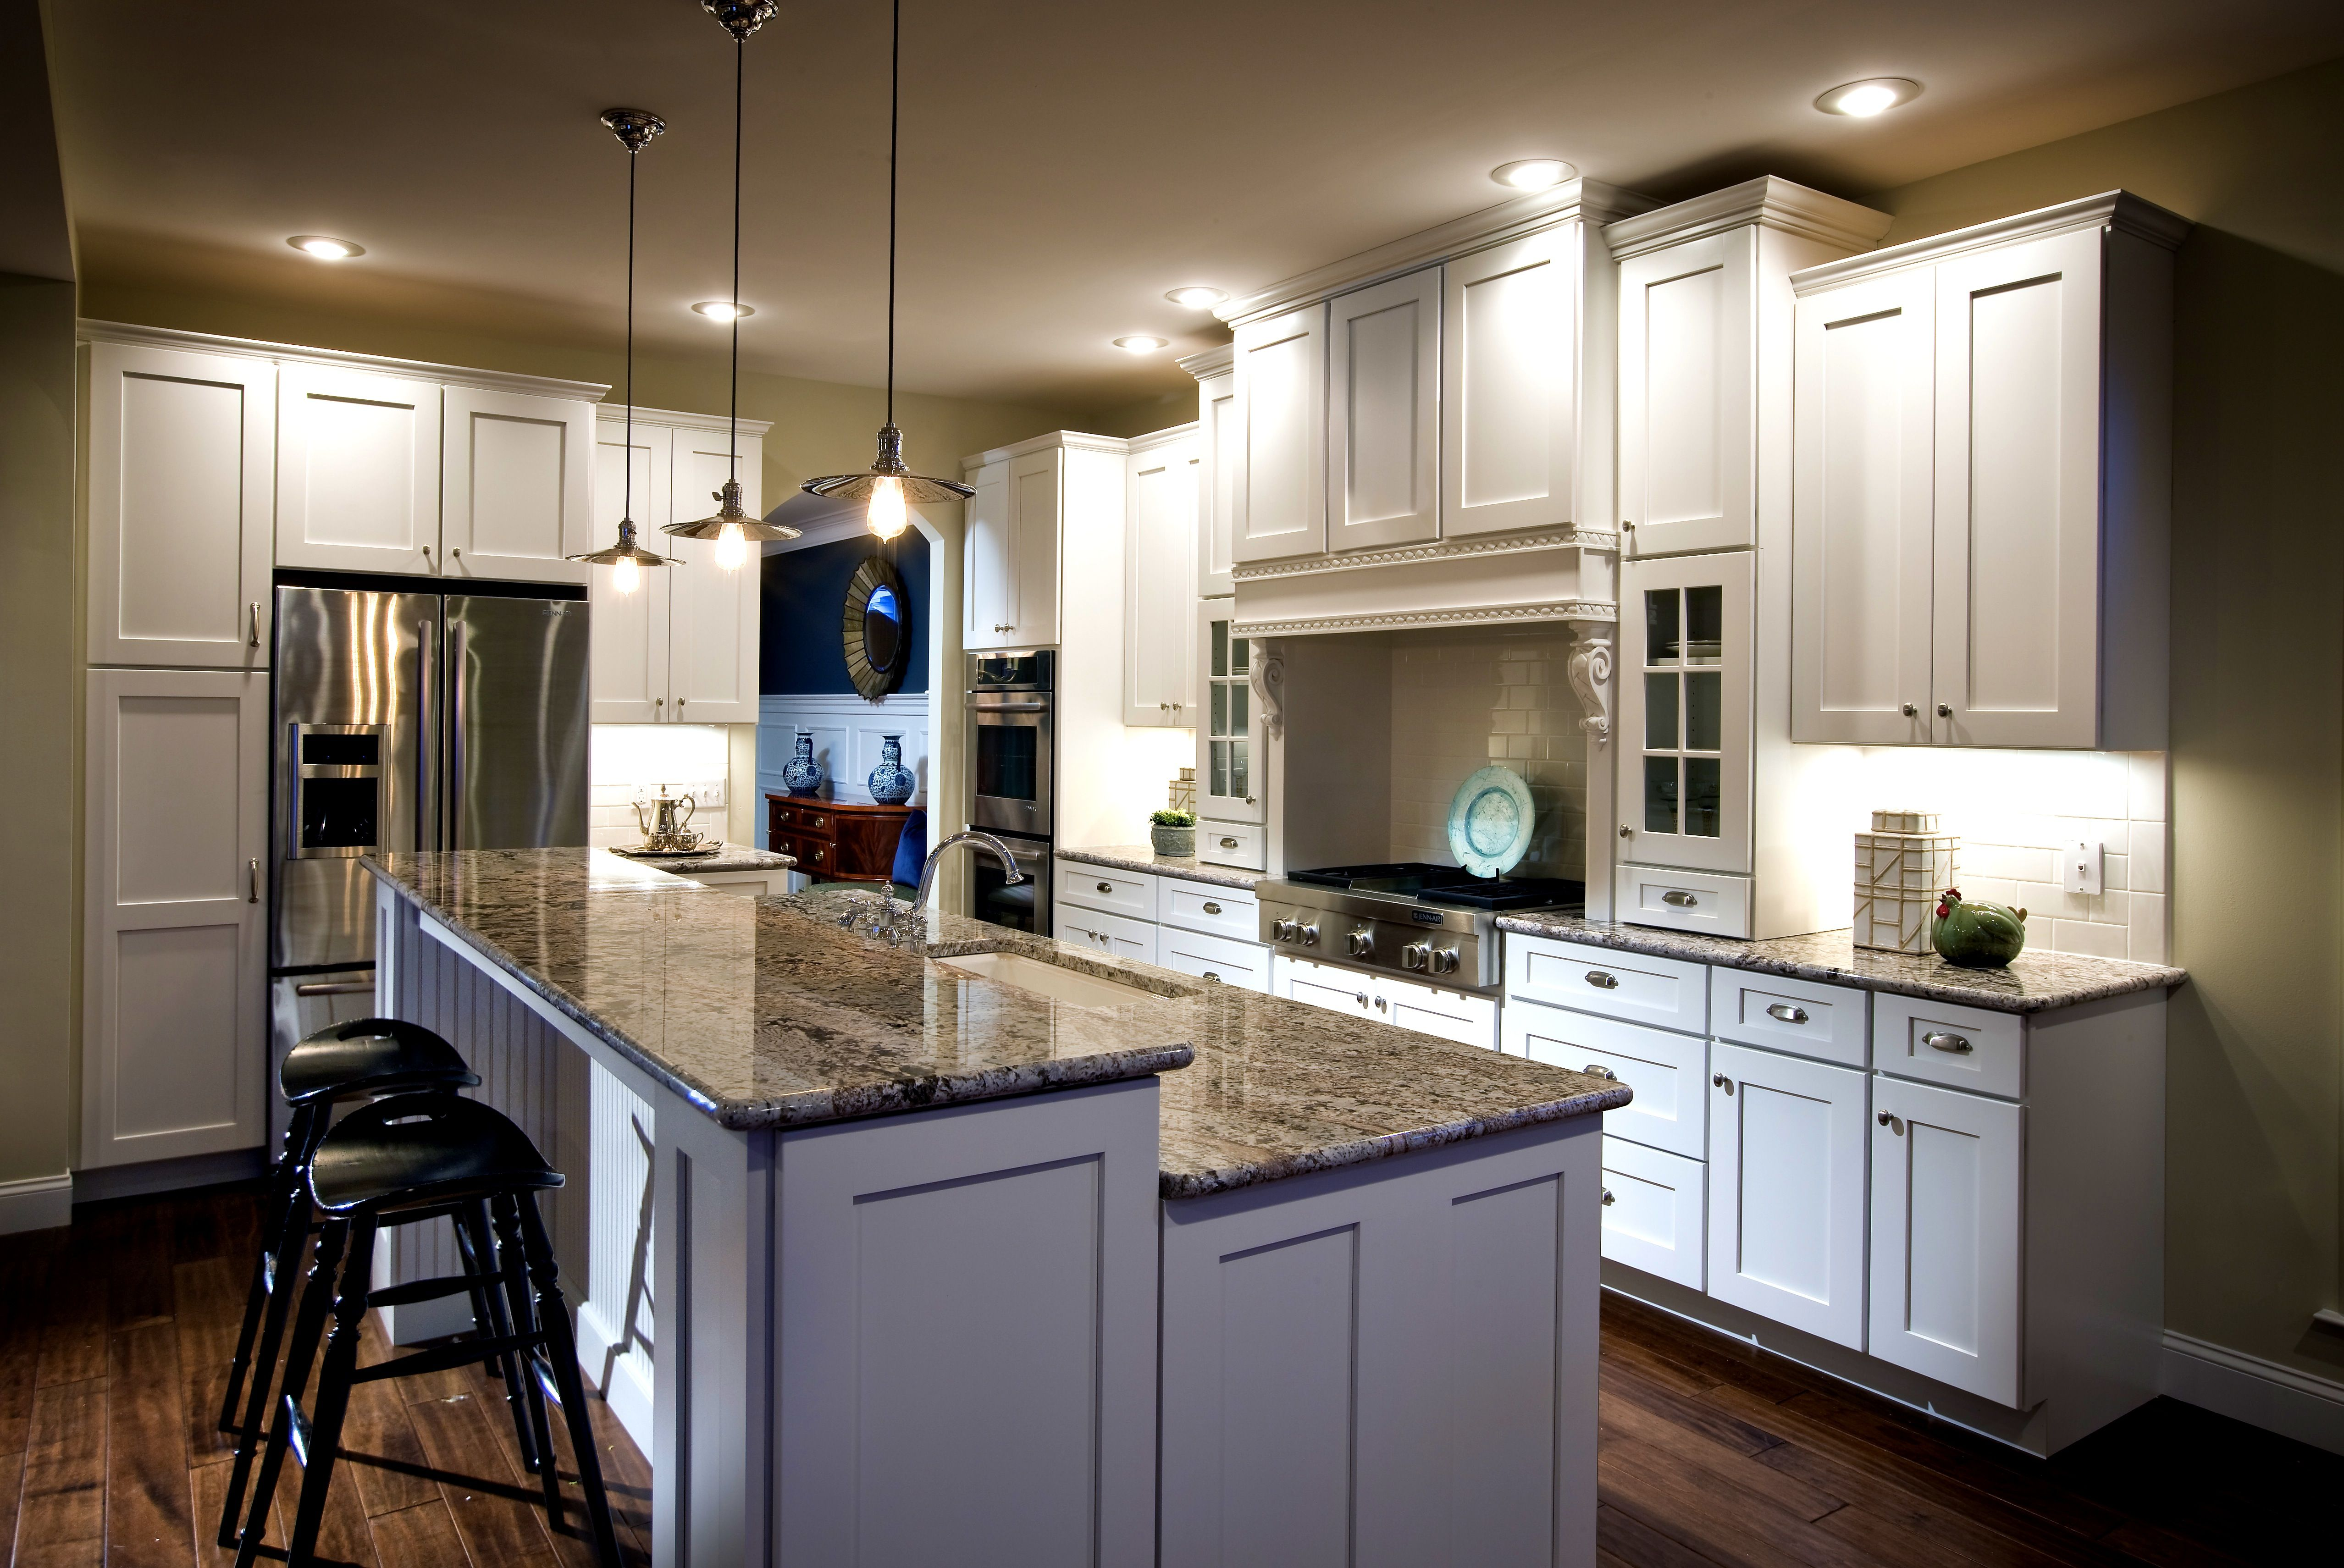 bathroom breathtaking colorful small kitchen island ideas seating and design islands layouts wi on kitchen island ideas in small kitchen id=17006